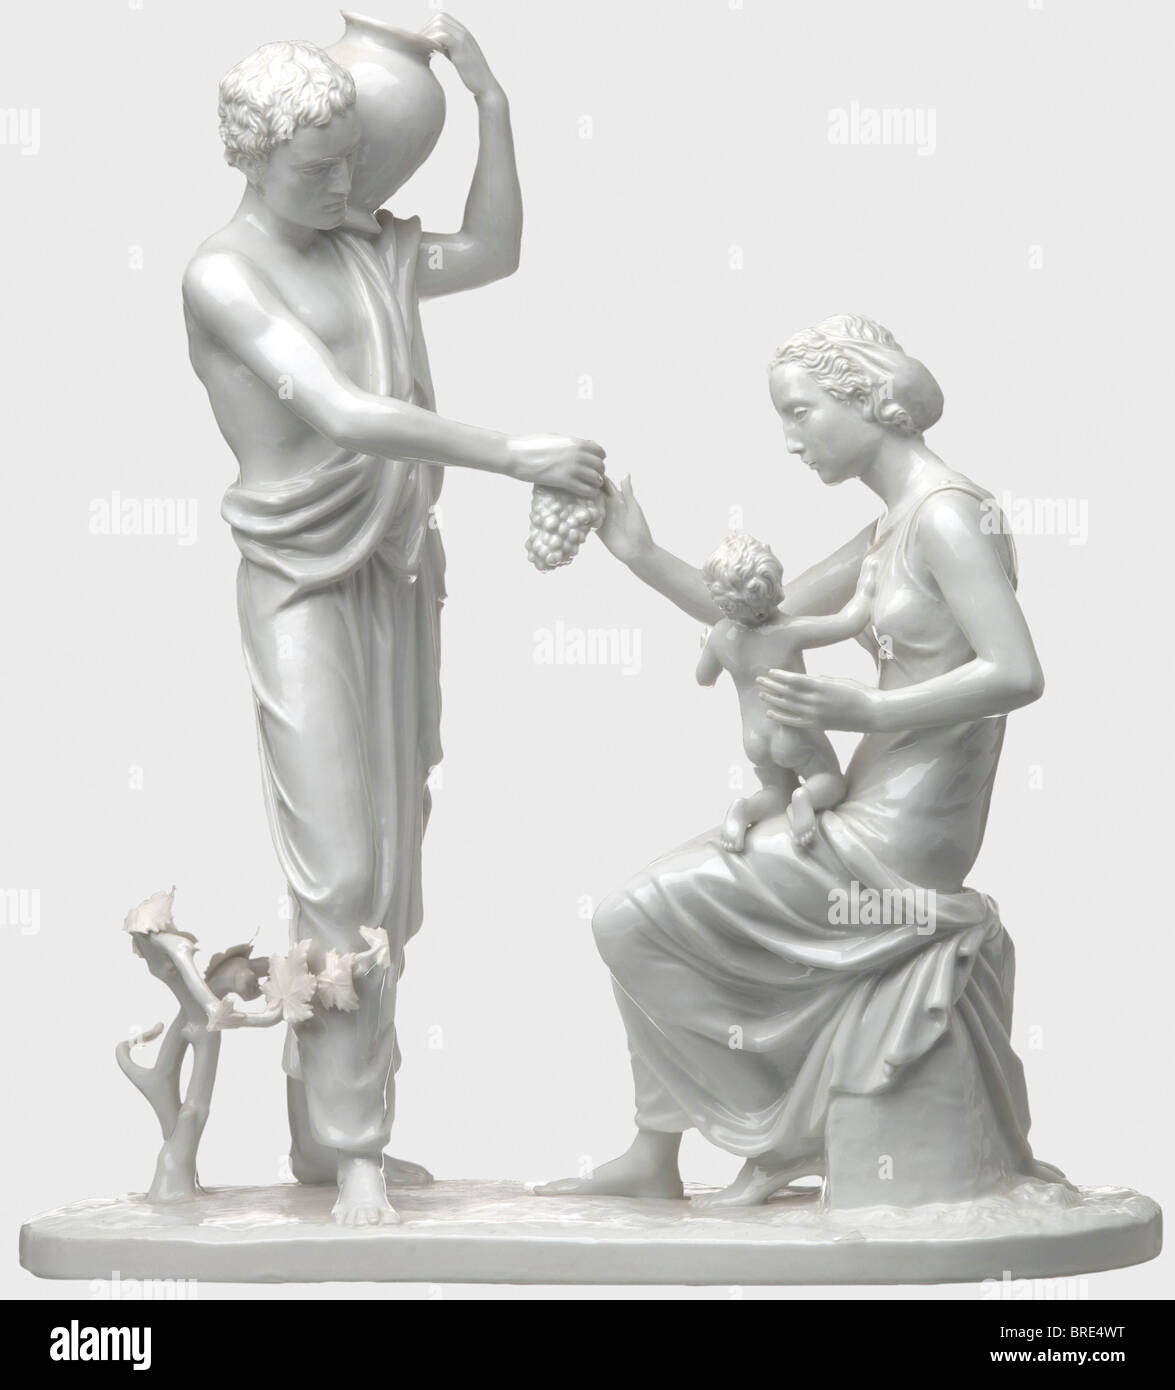 Roland von Bohr - the centrepiece 'Autumn', for the Reich Foreign Ministry Group of figures made of white, - Stock Image